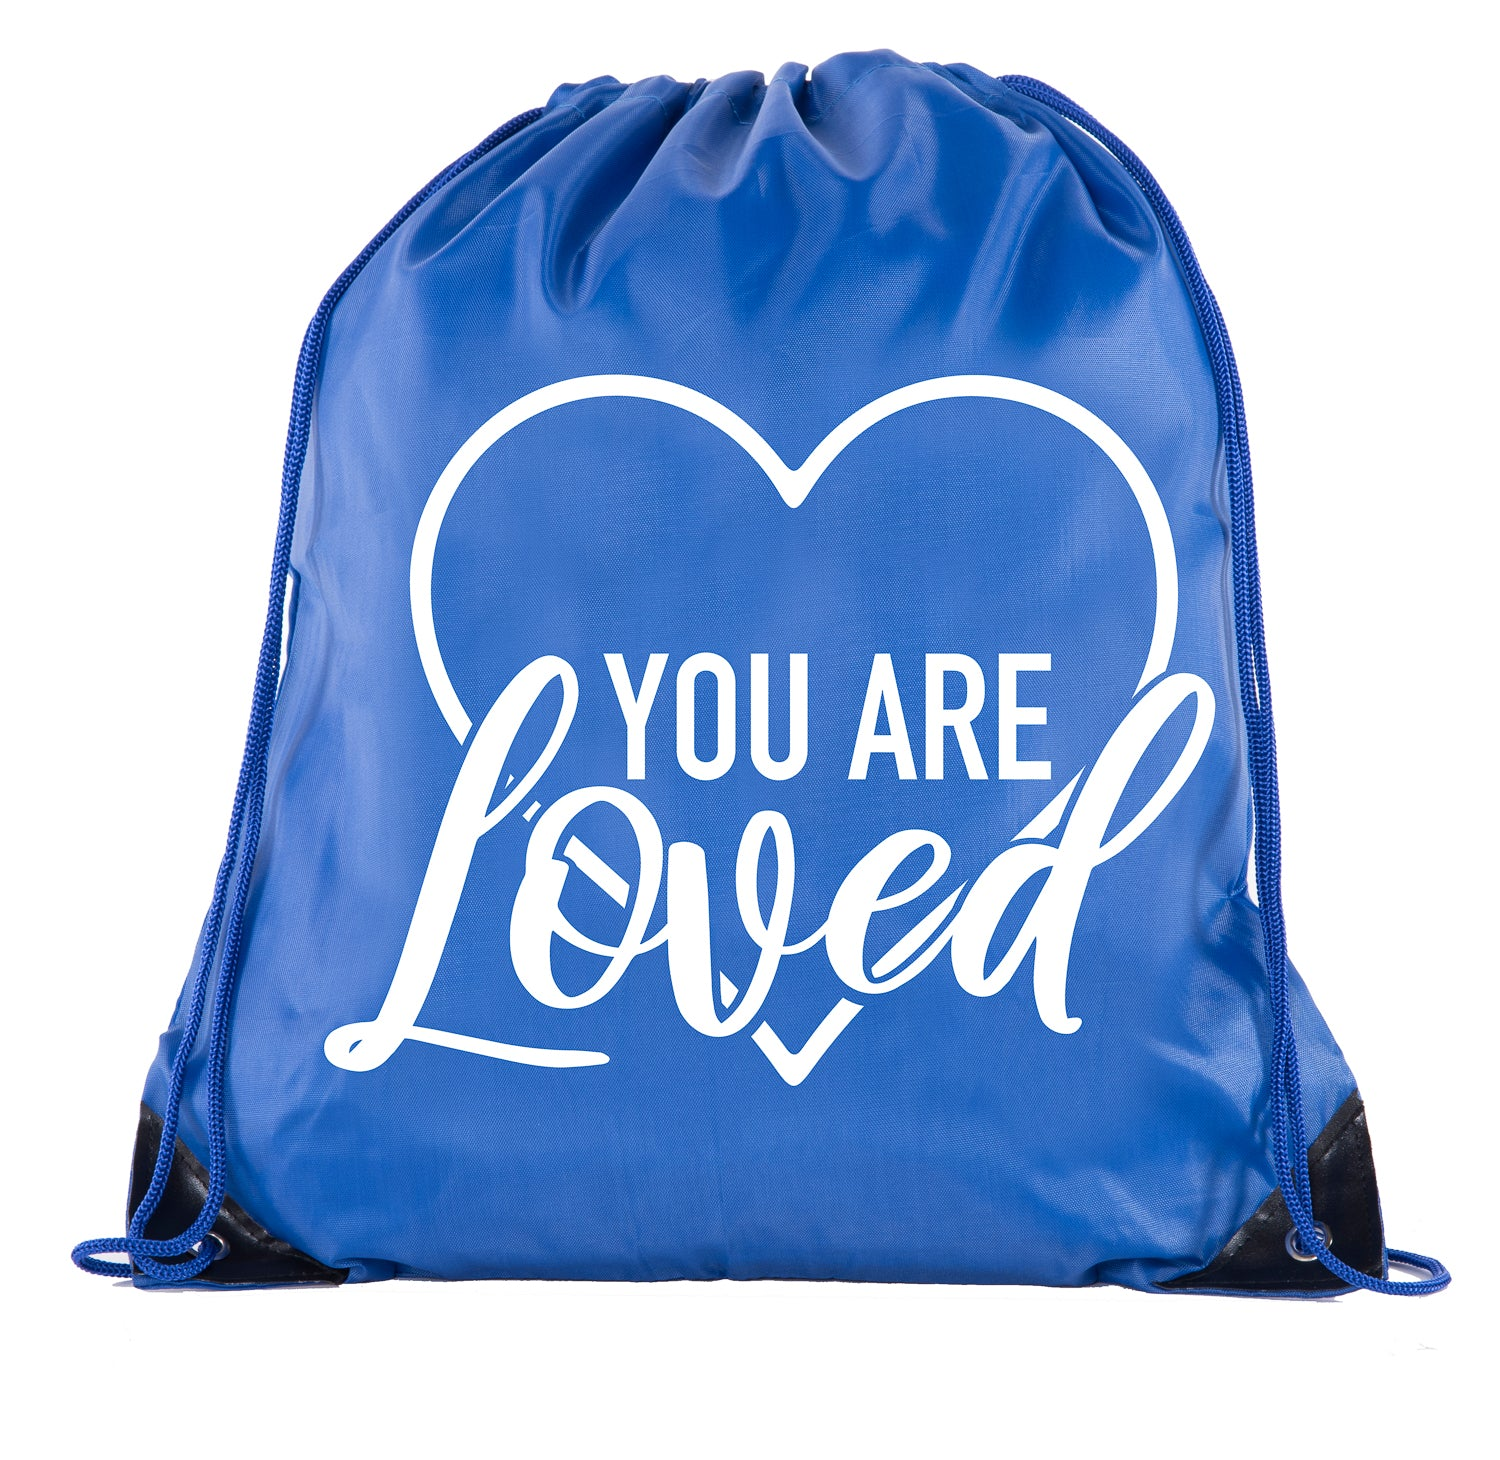 Accessory - Inspirational Gift Bags, Promotional Bags For Charities, Non-Profits, And Fundraising - You Are Loved